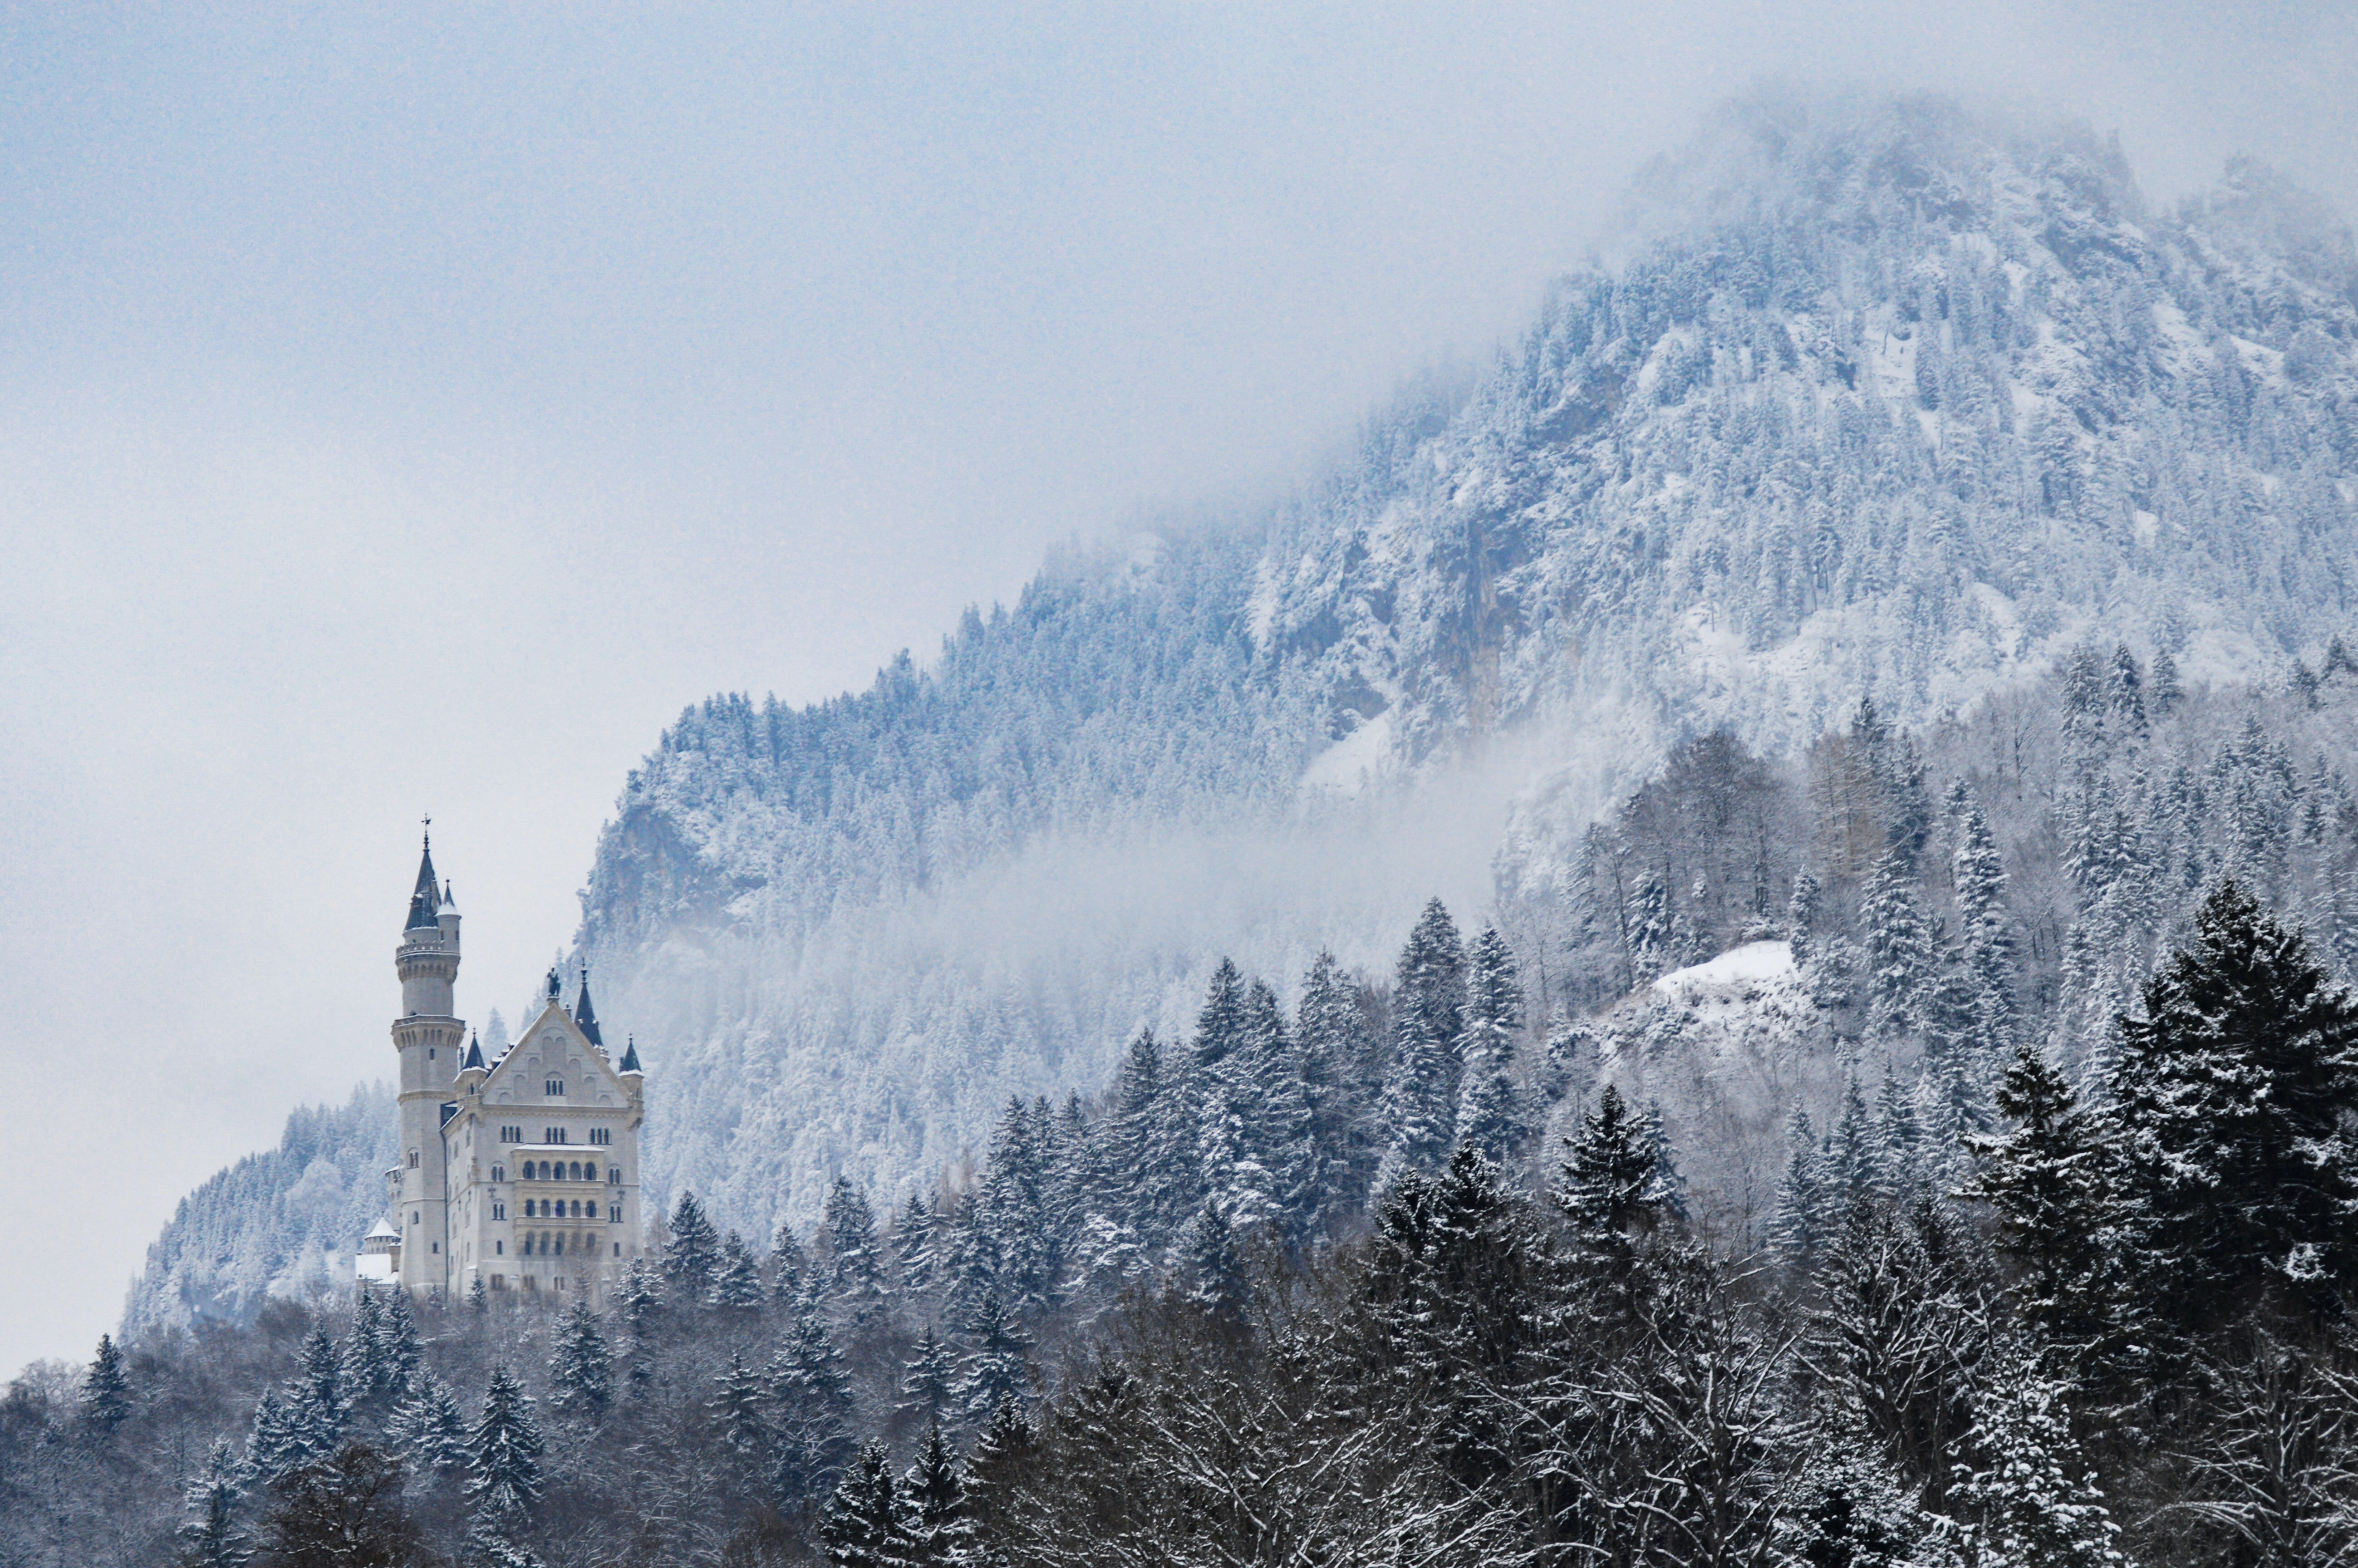 gray castle in the middle of forest